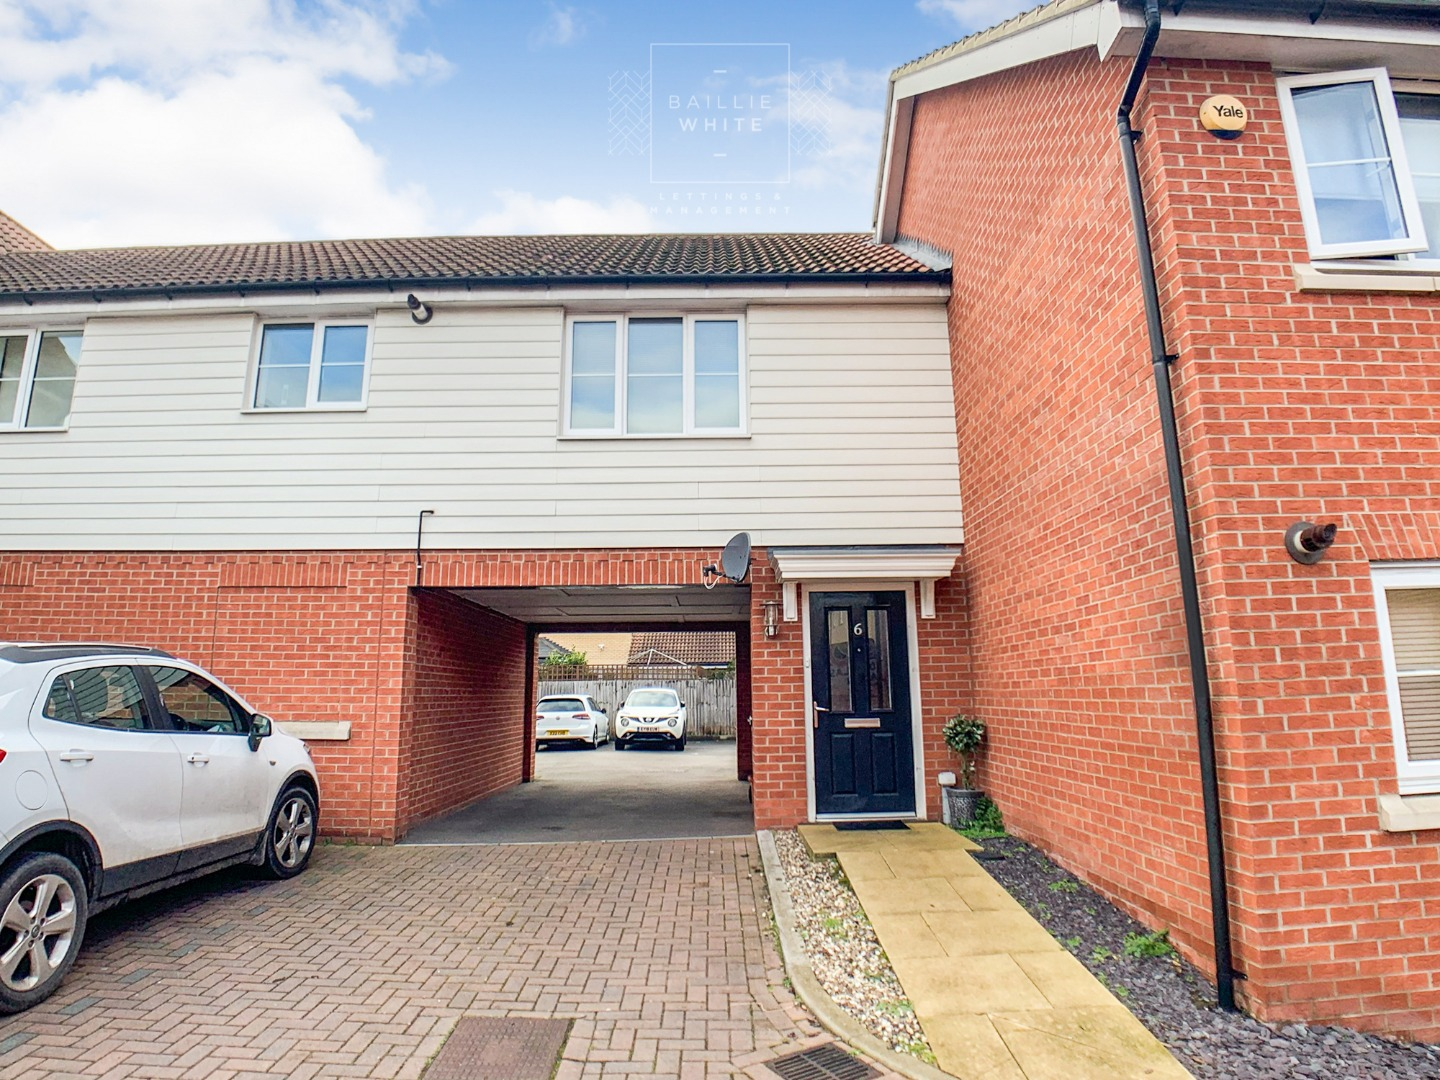 2 bed apartment to rent in Liddell Drive, Basildon SS14, SS14